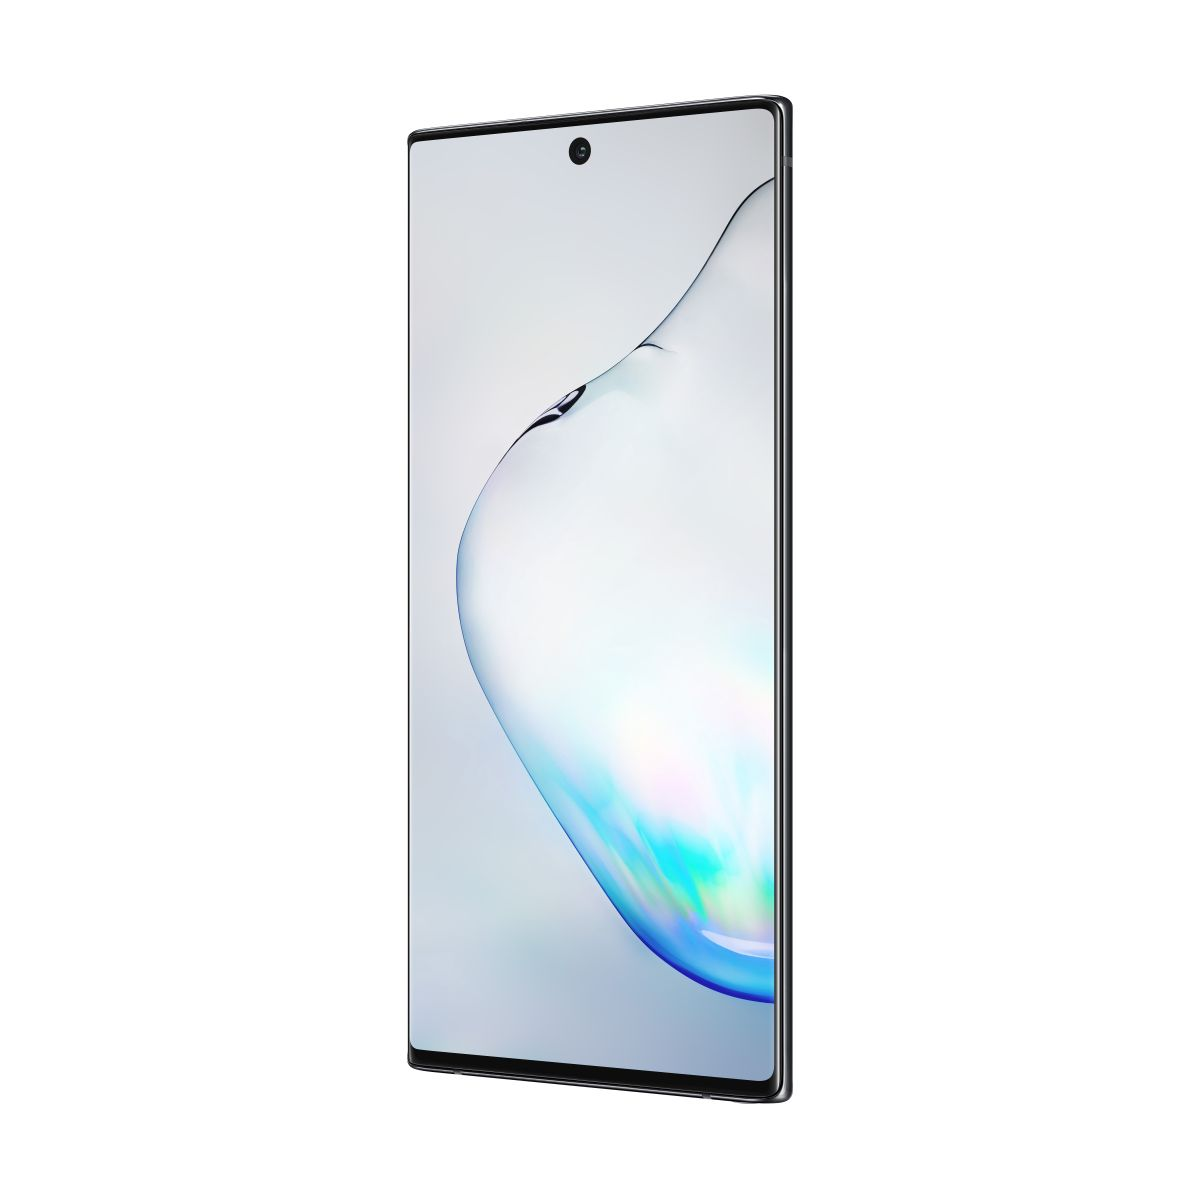 Samsung Galaxy Note 10 at Walmart: Preorder today and save up to